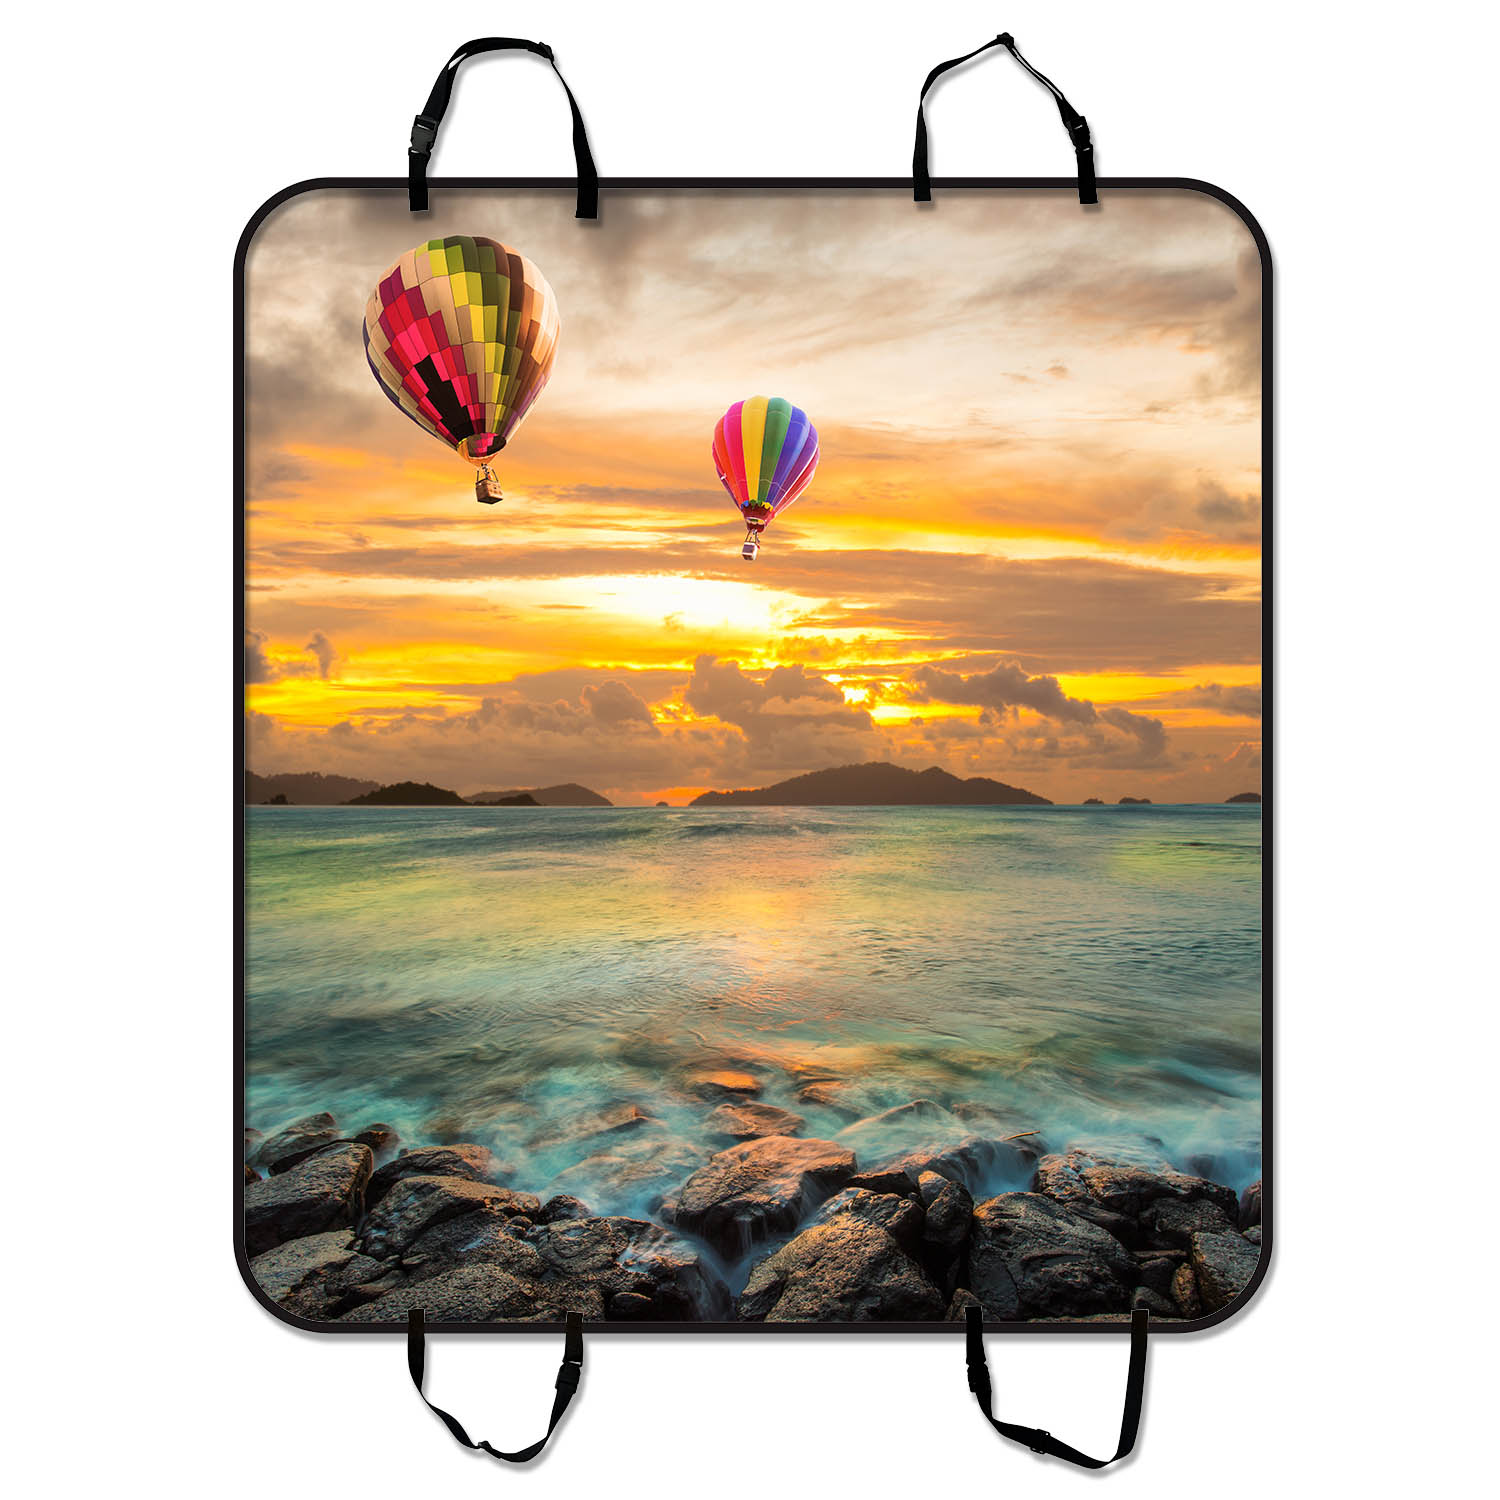 YKCG Sunset Sea Rocks Hot Air Balloon Pet Seat Cover Car ...